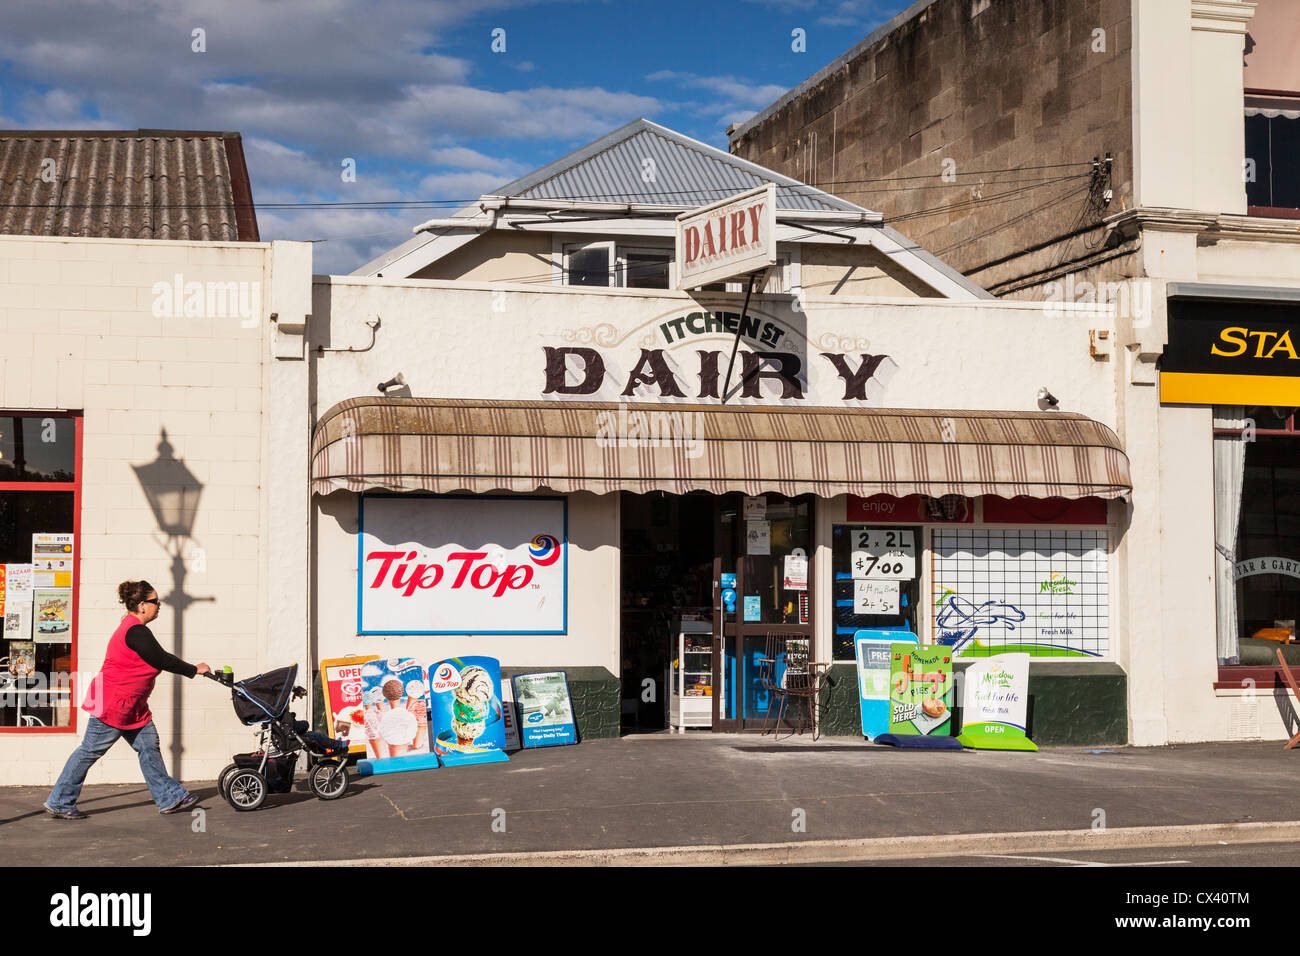 Itchen Street Dairy, the New Zealand corner shop, Oamaru, Otago. - Stock Image